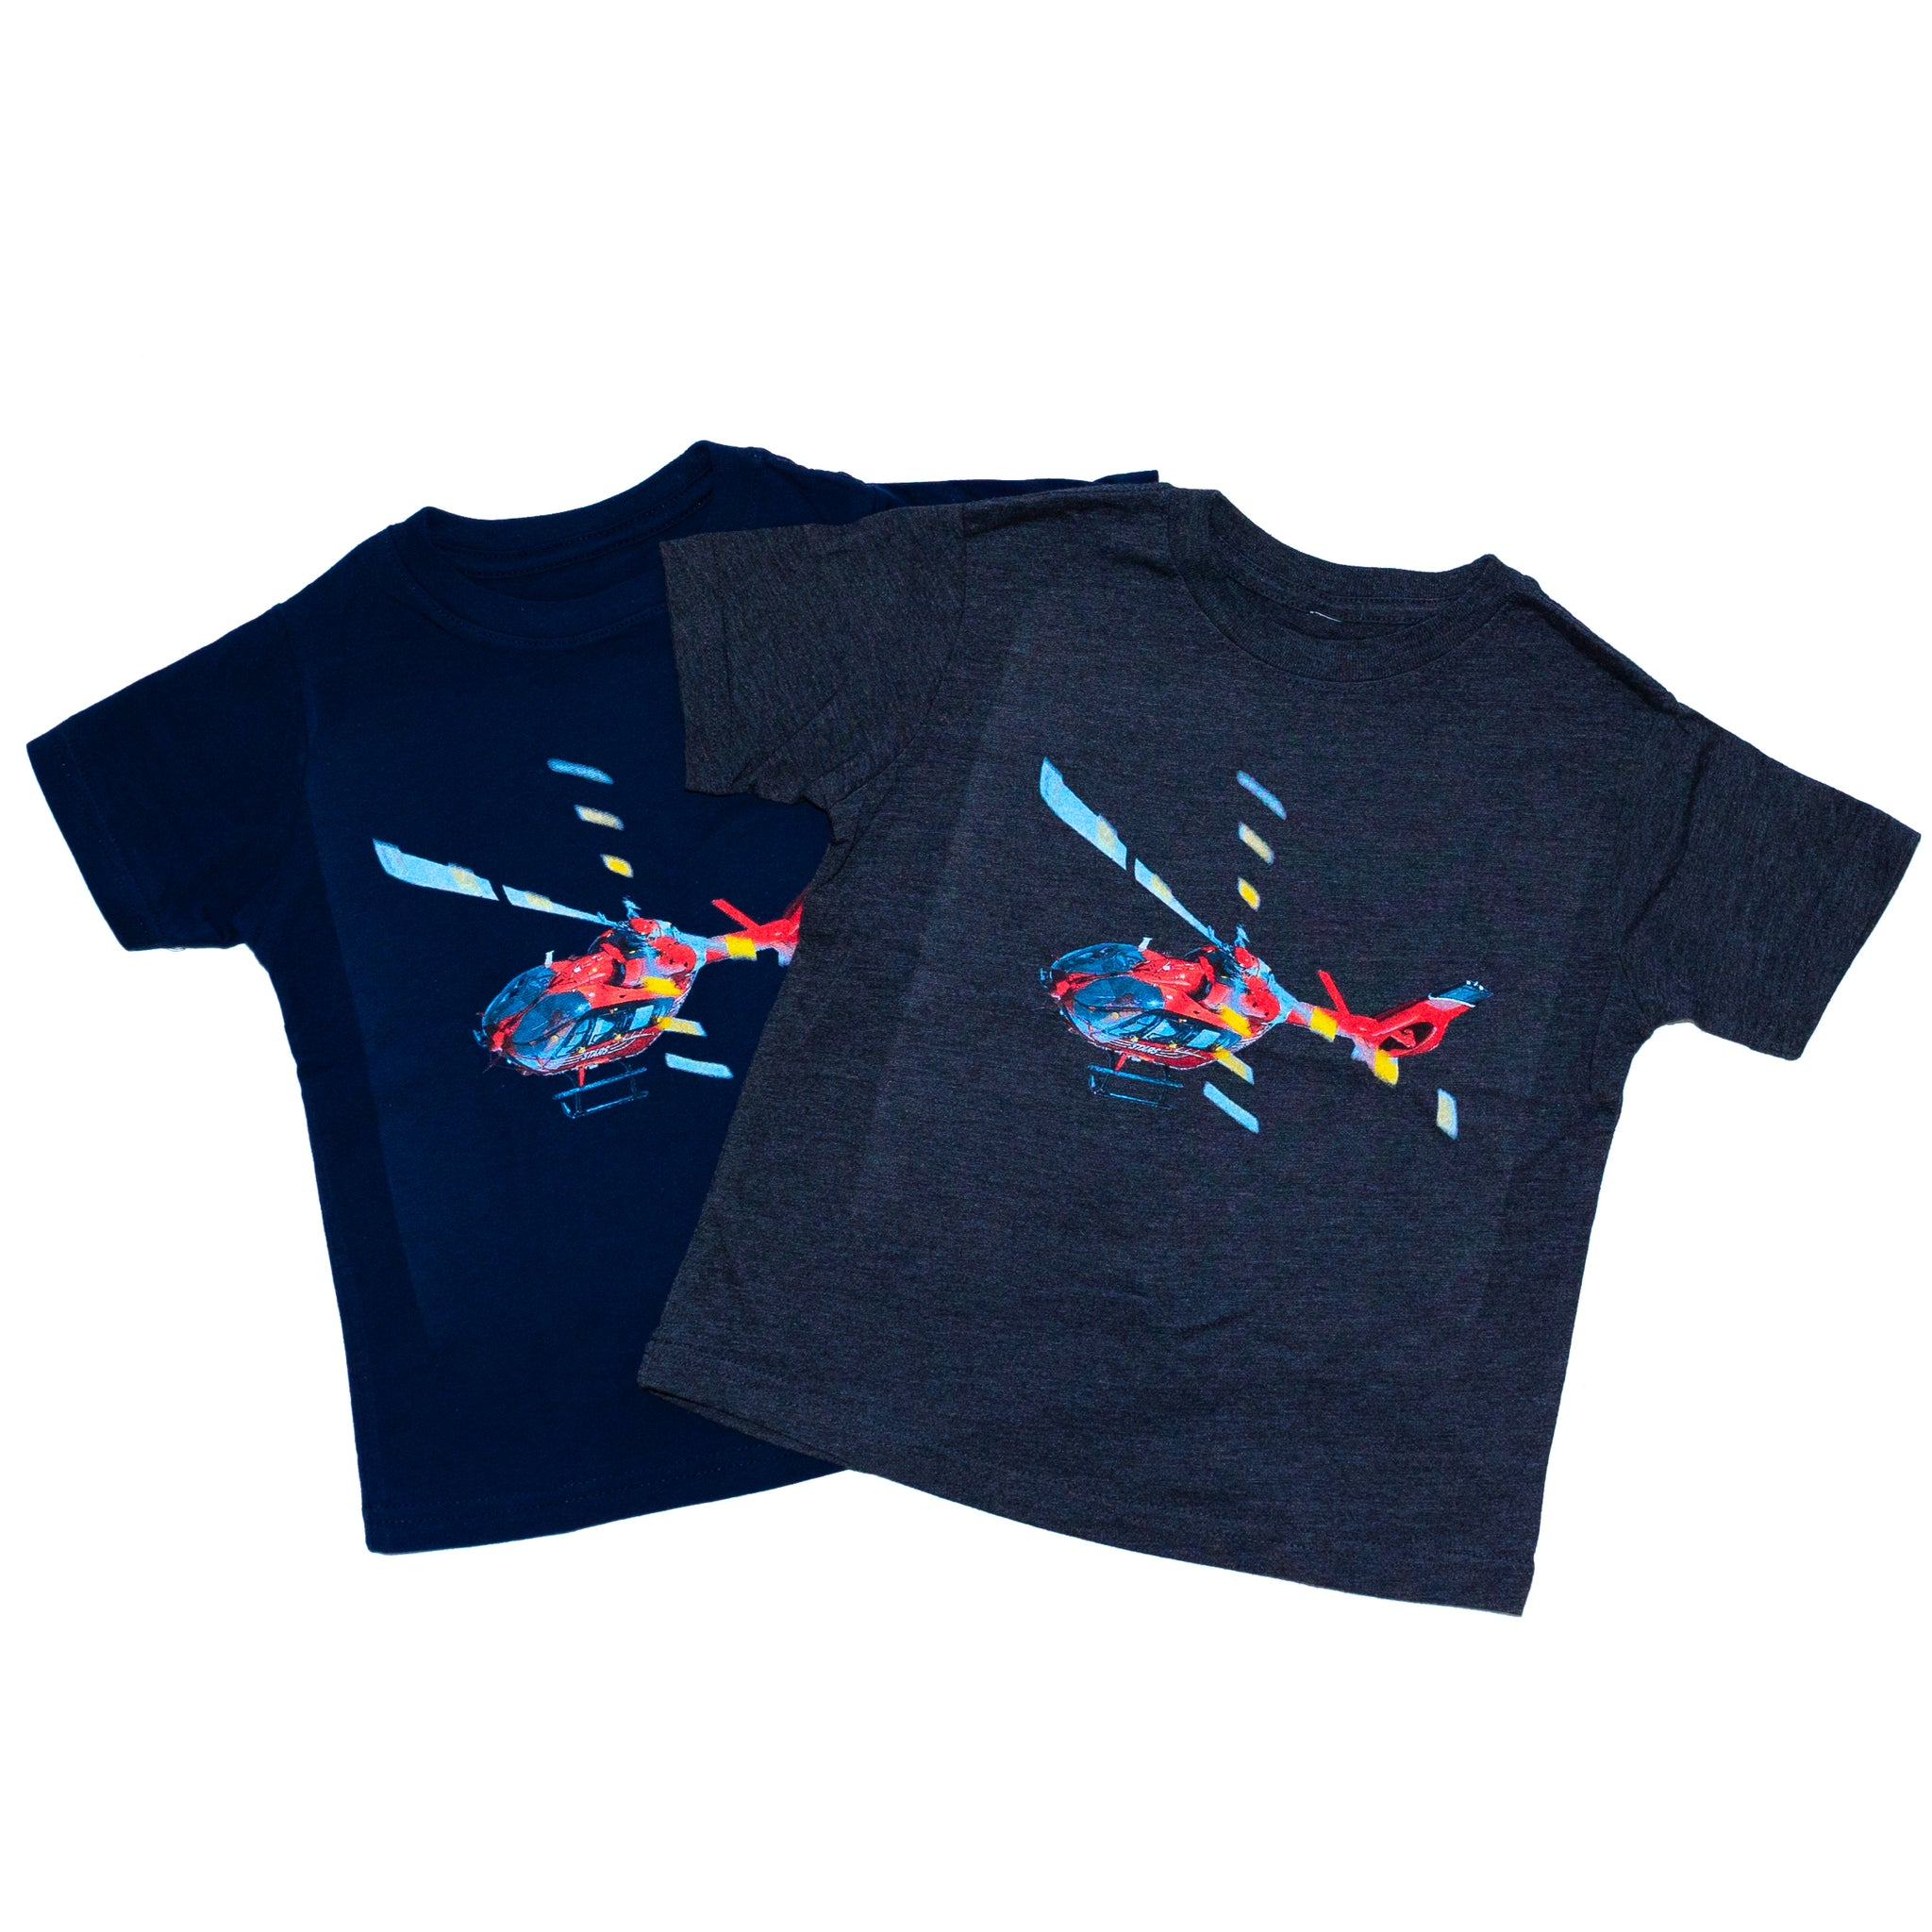 H145 Helicopter Toddler T-Shirt